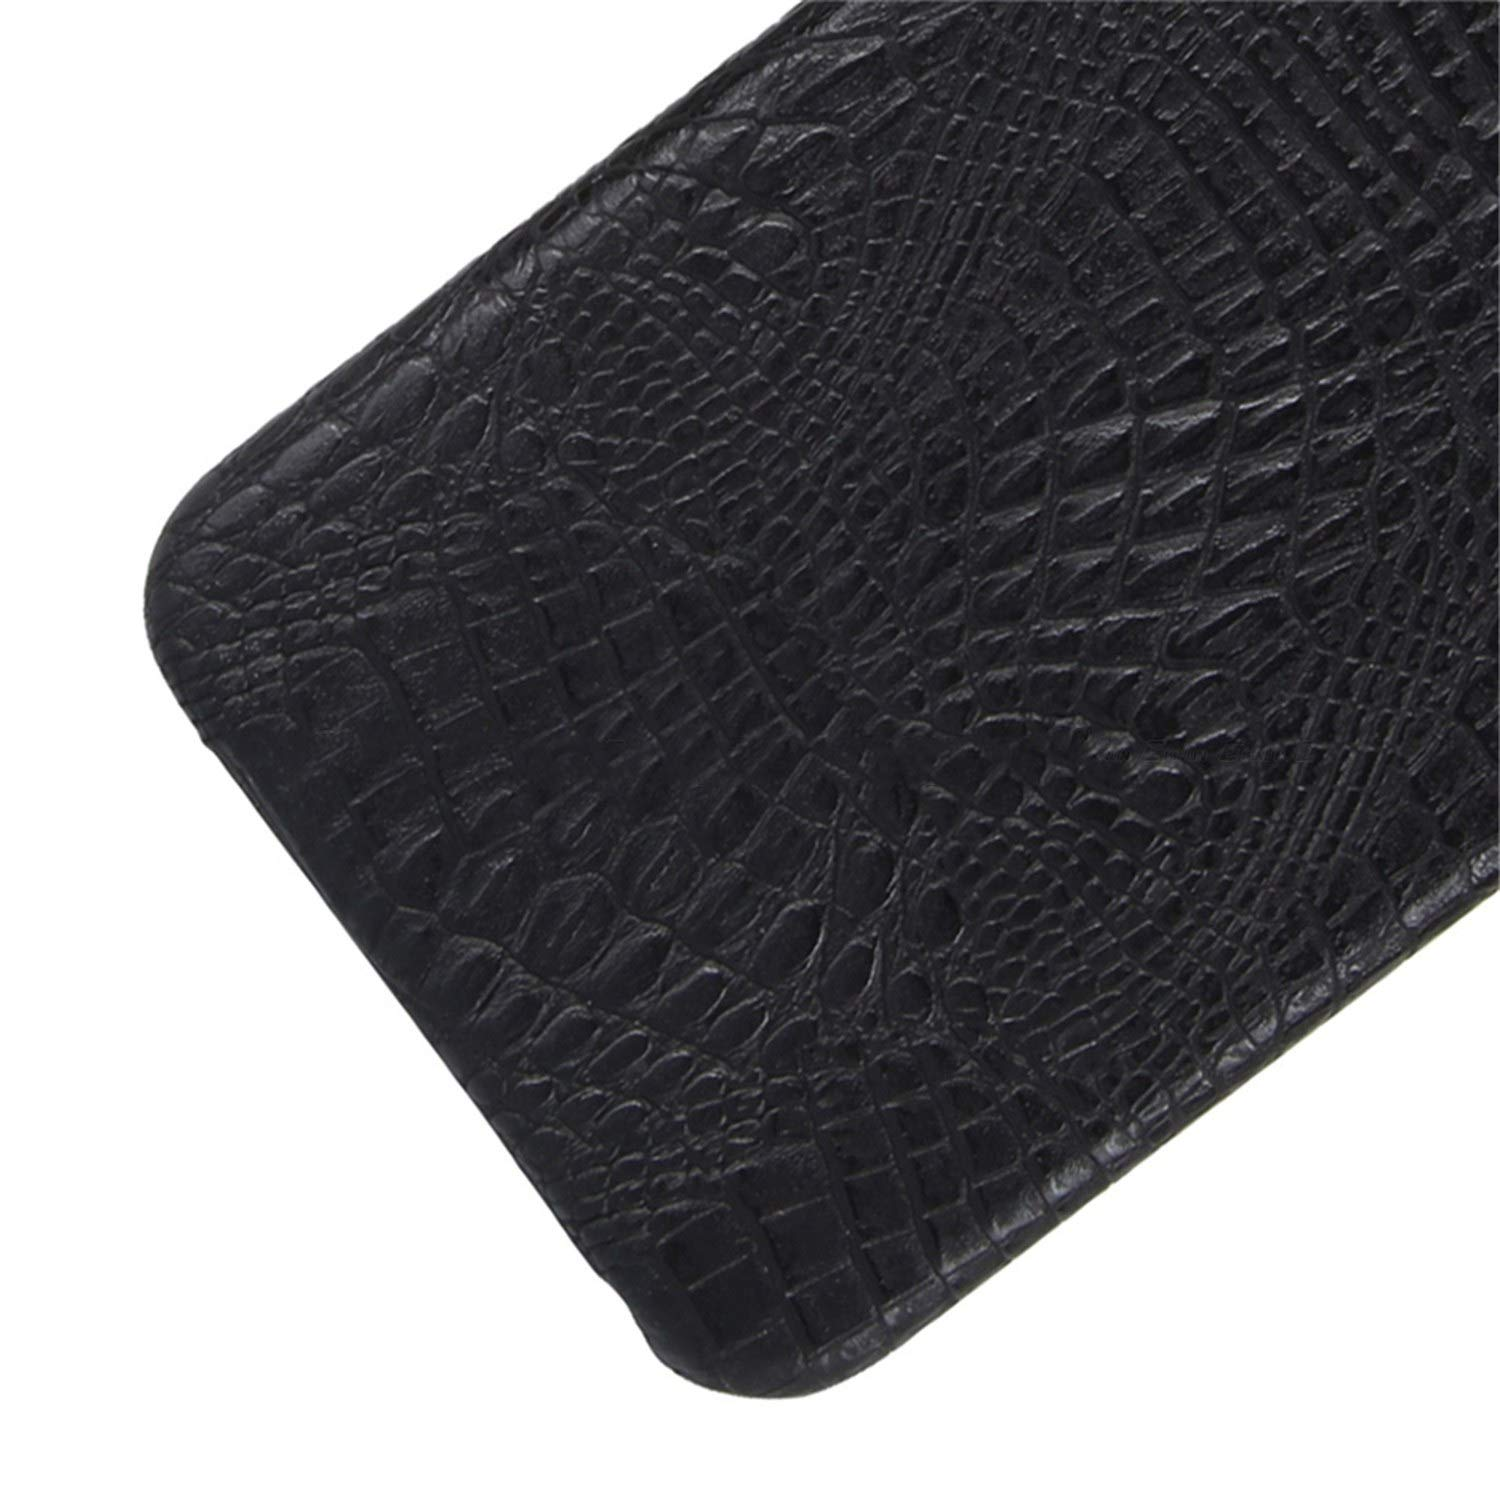 Amazon.com: Crocodile Snake Leather Phone Case for Samsung ...